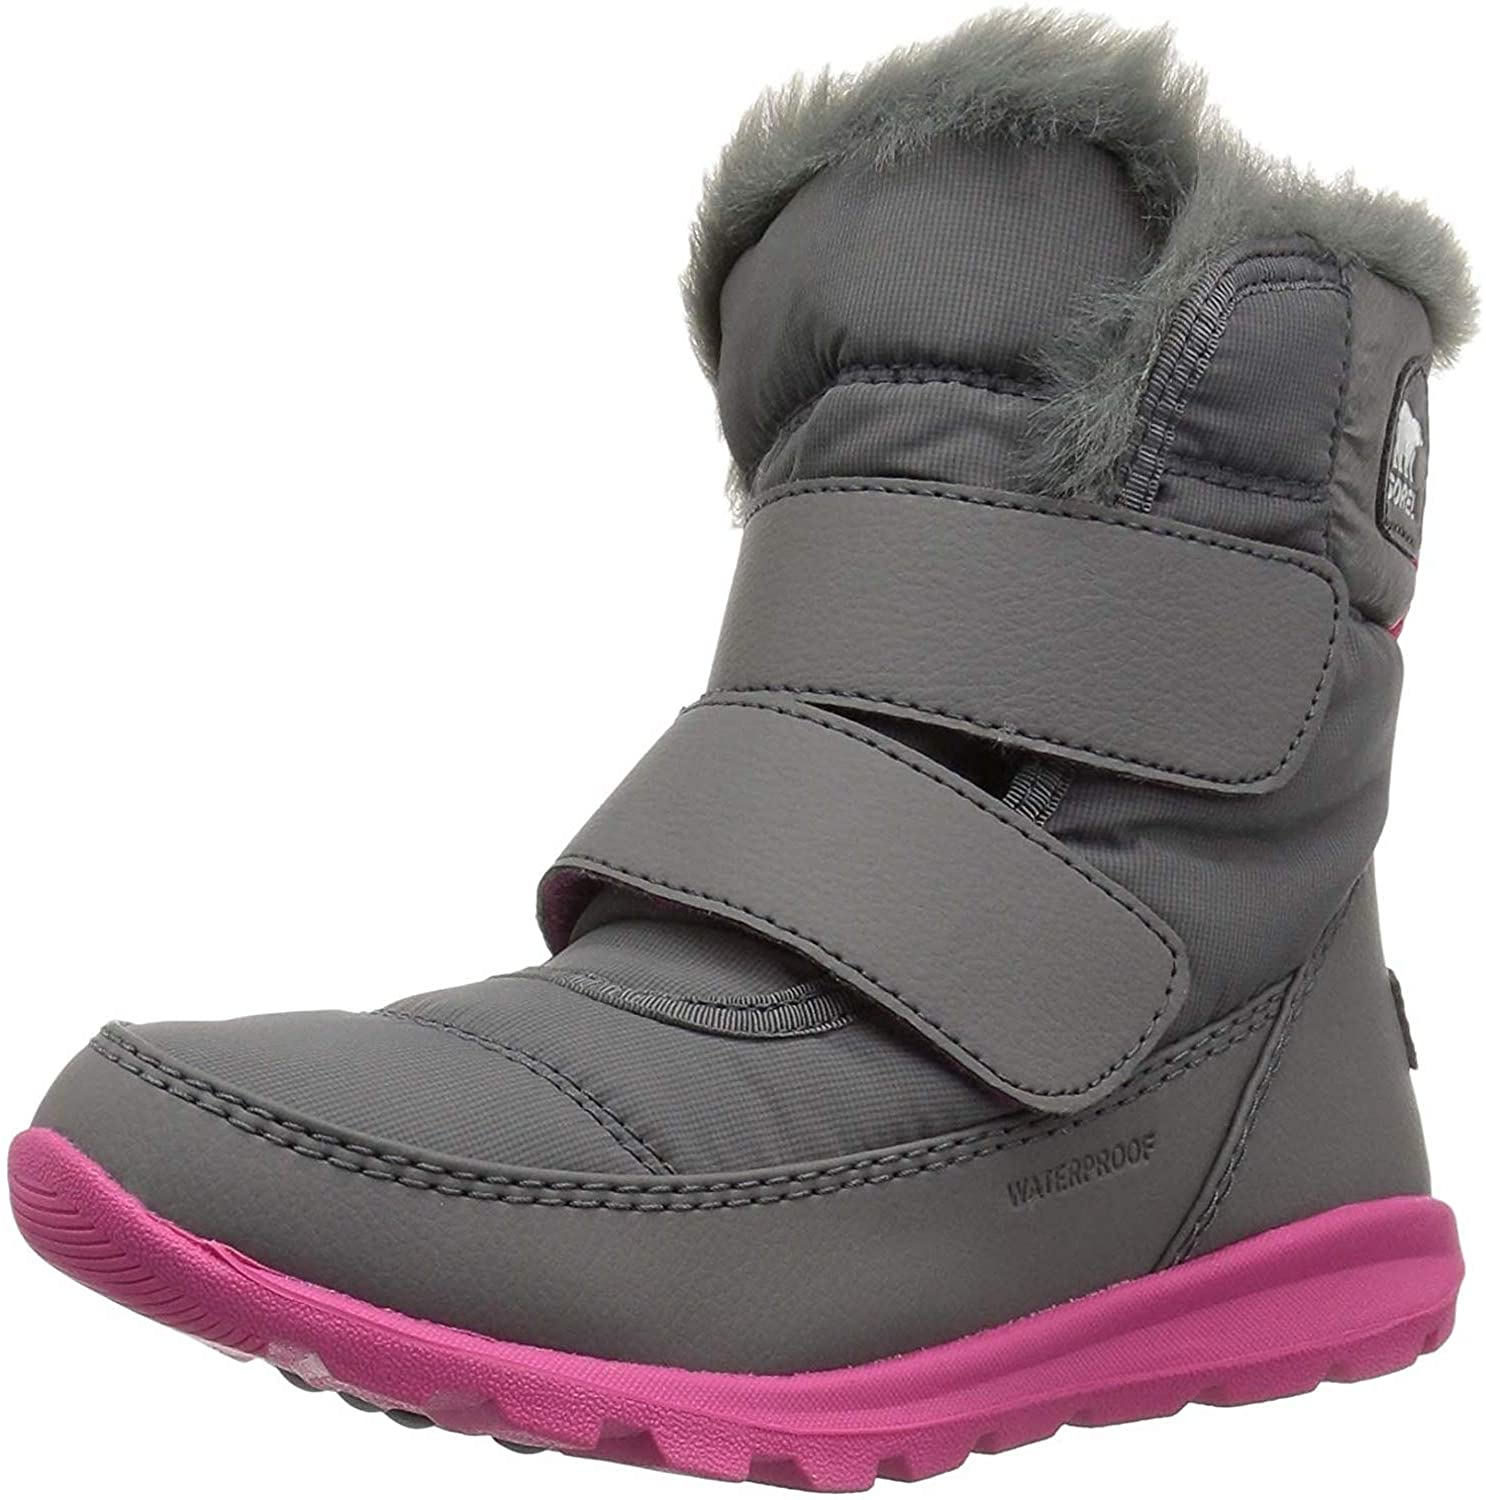 SOREL - Youth Whitney Strap Waterproof Insulated Winter Boot for Kids